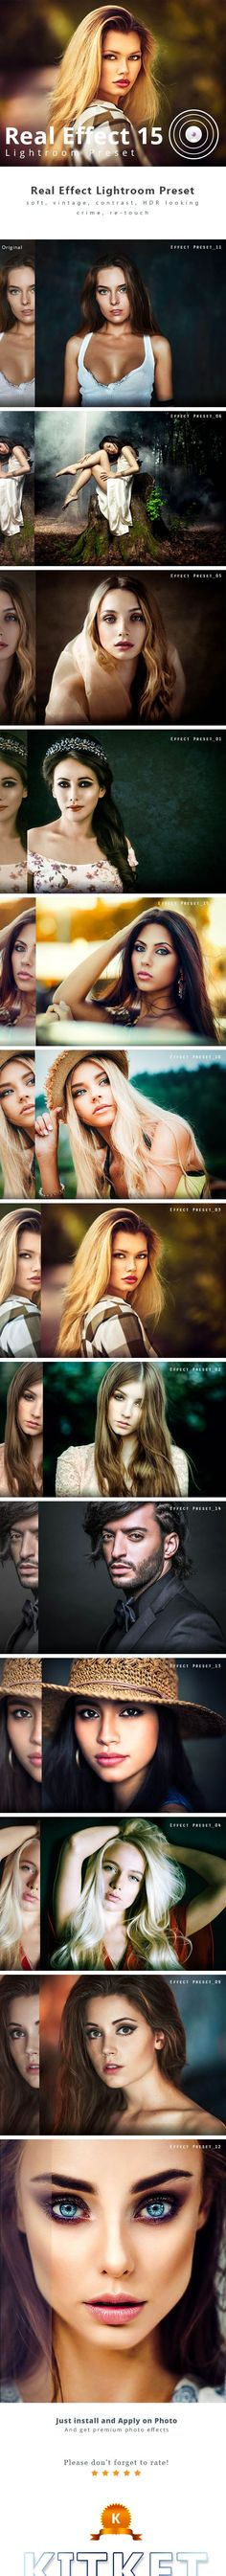 Real Effect 15 Photography Lightroom Preset. Download here: https://graphicriver.net/item/real-effect-15-photography-lightroom-preset/17412999?ref=ksioks